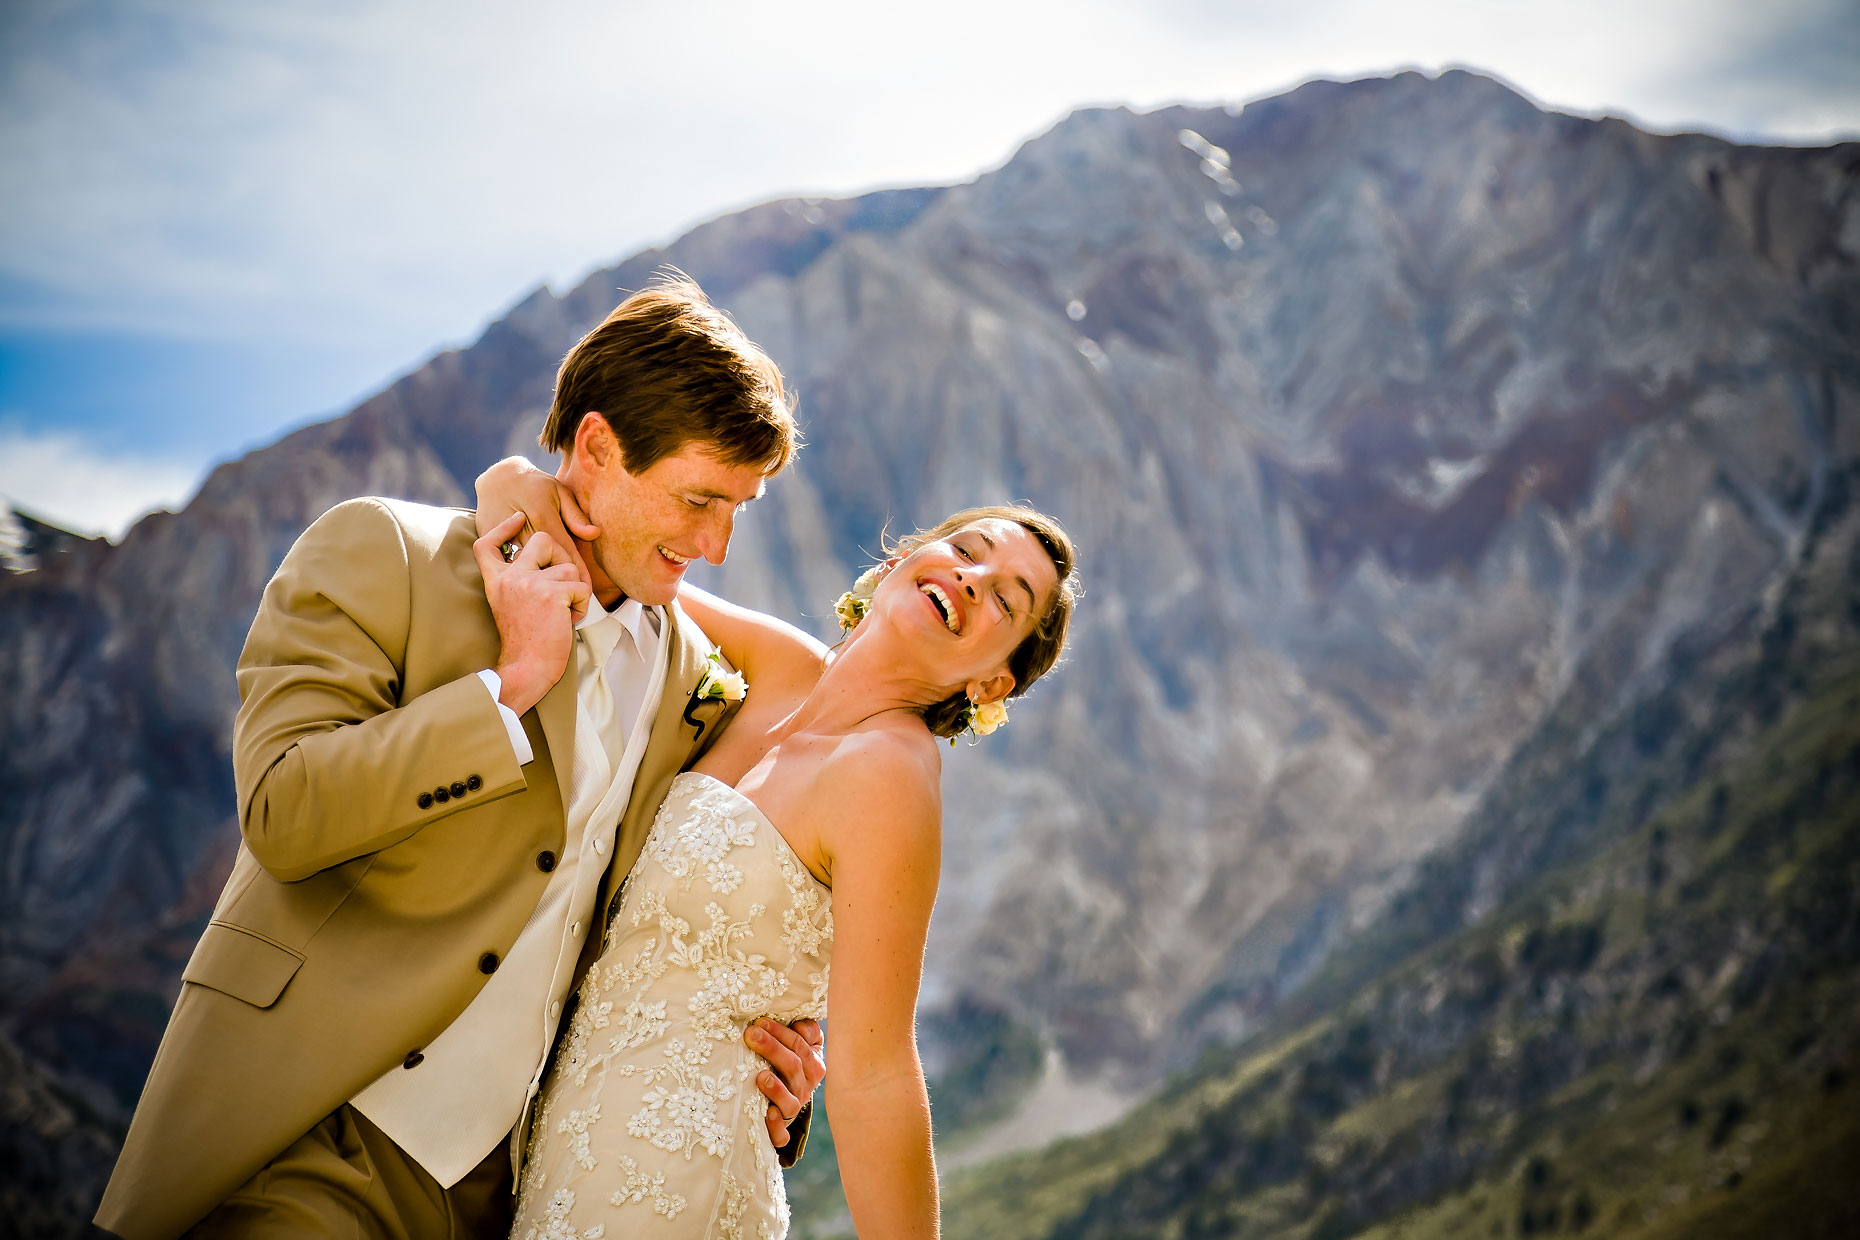 Convict Lake resort wedding couple photographer.